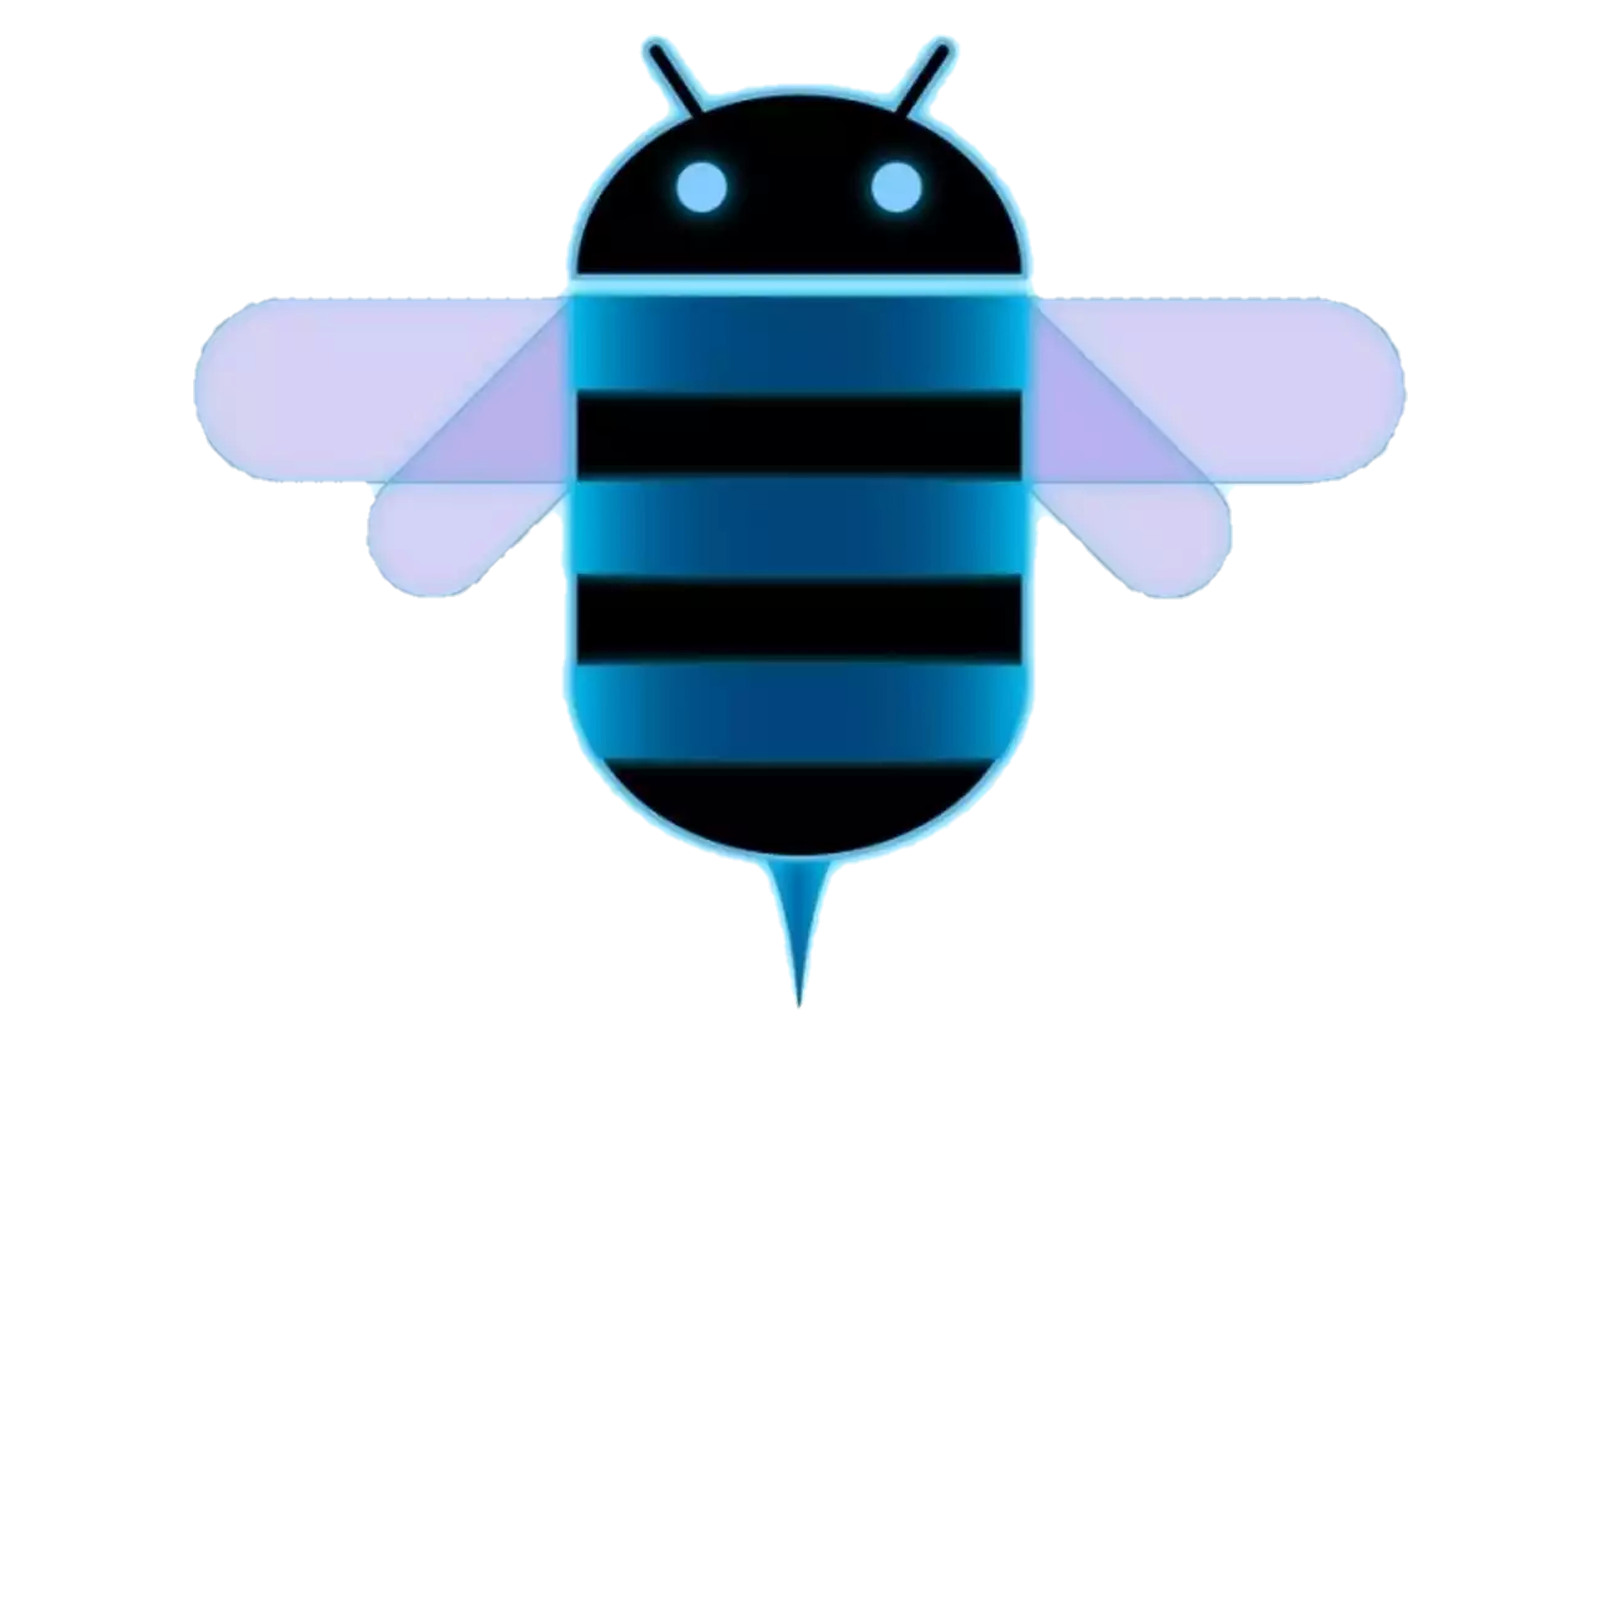 Honeycomb clipart honey comb. Android x central